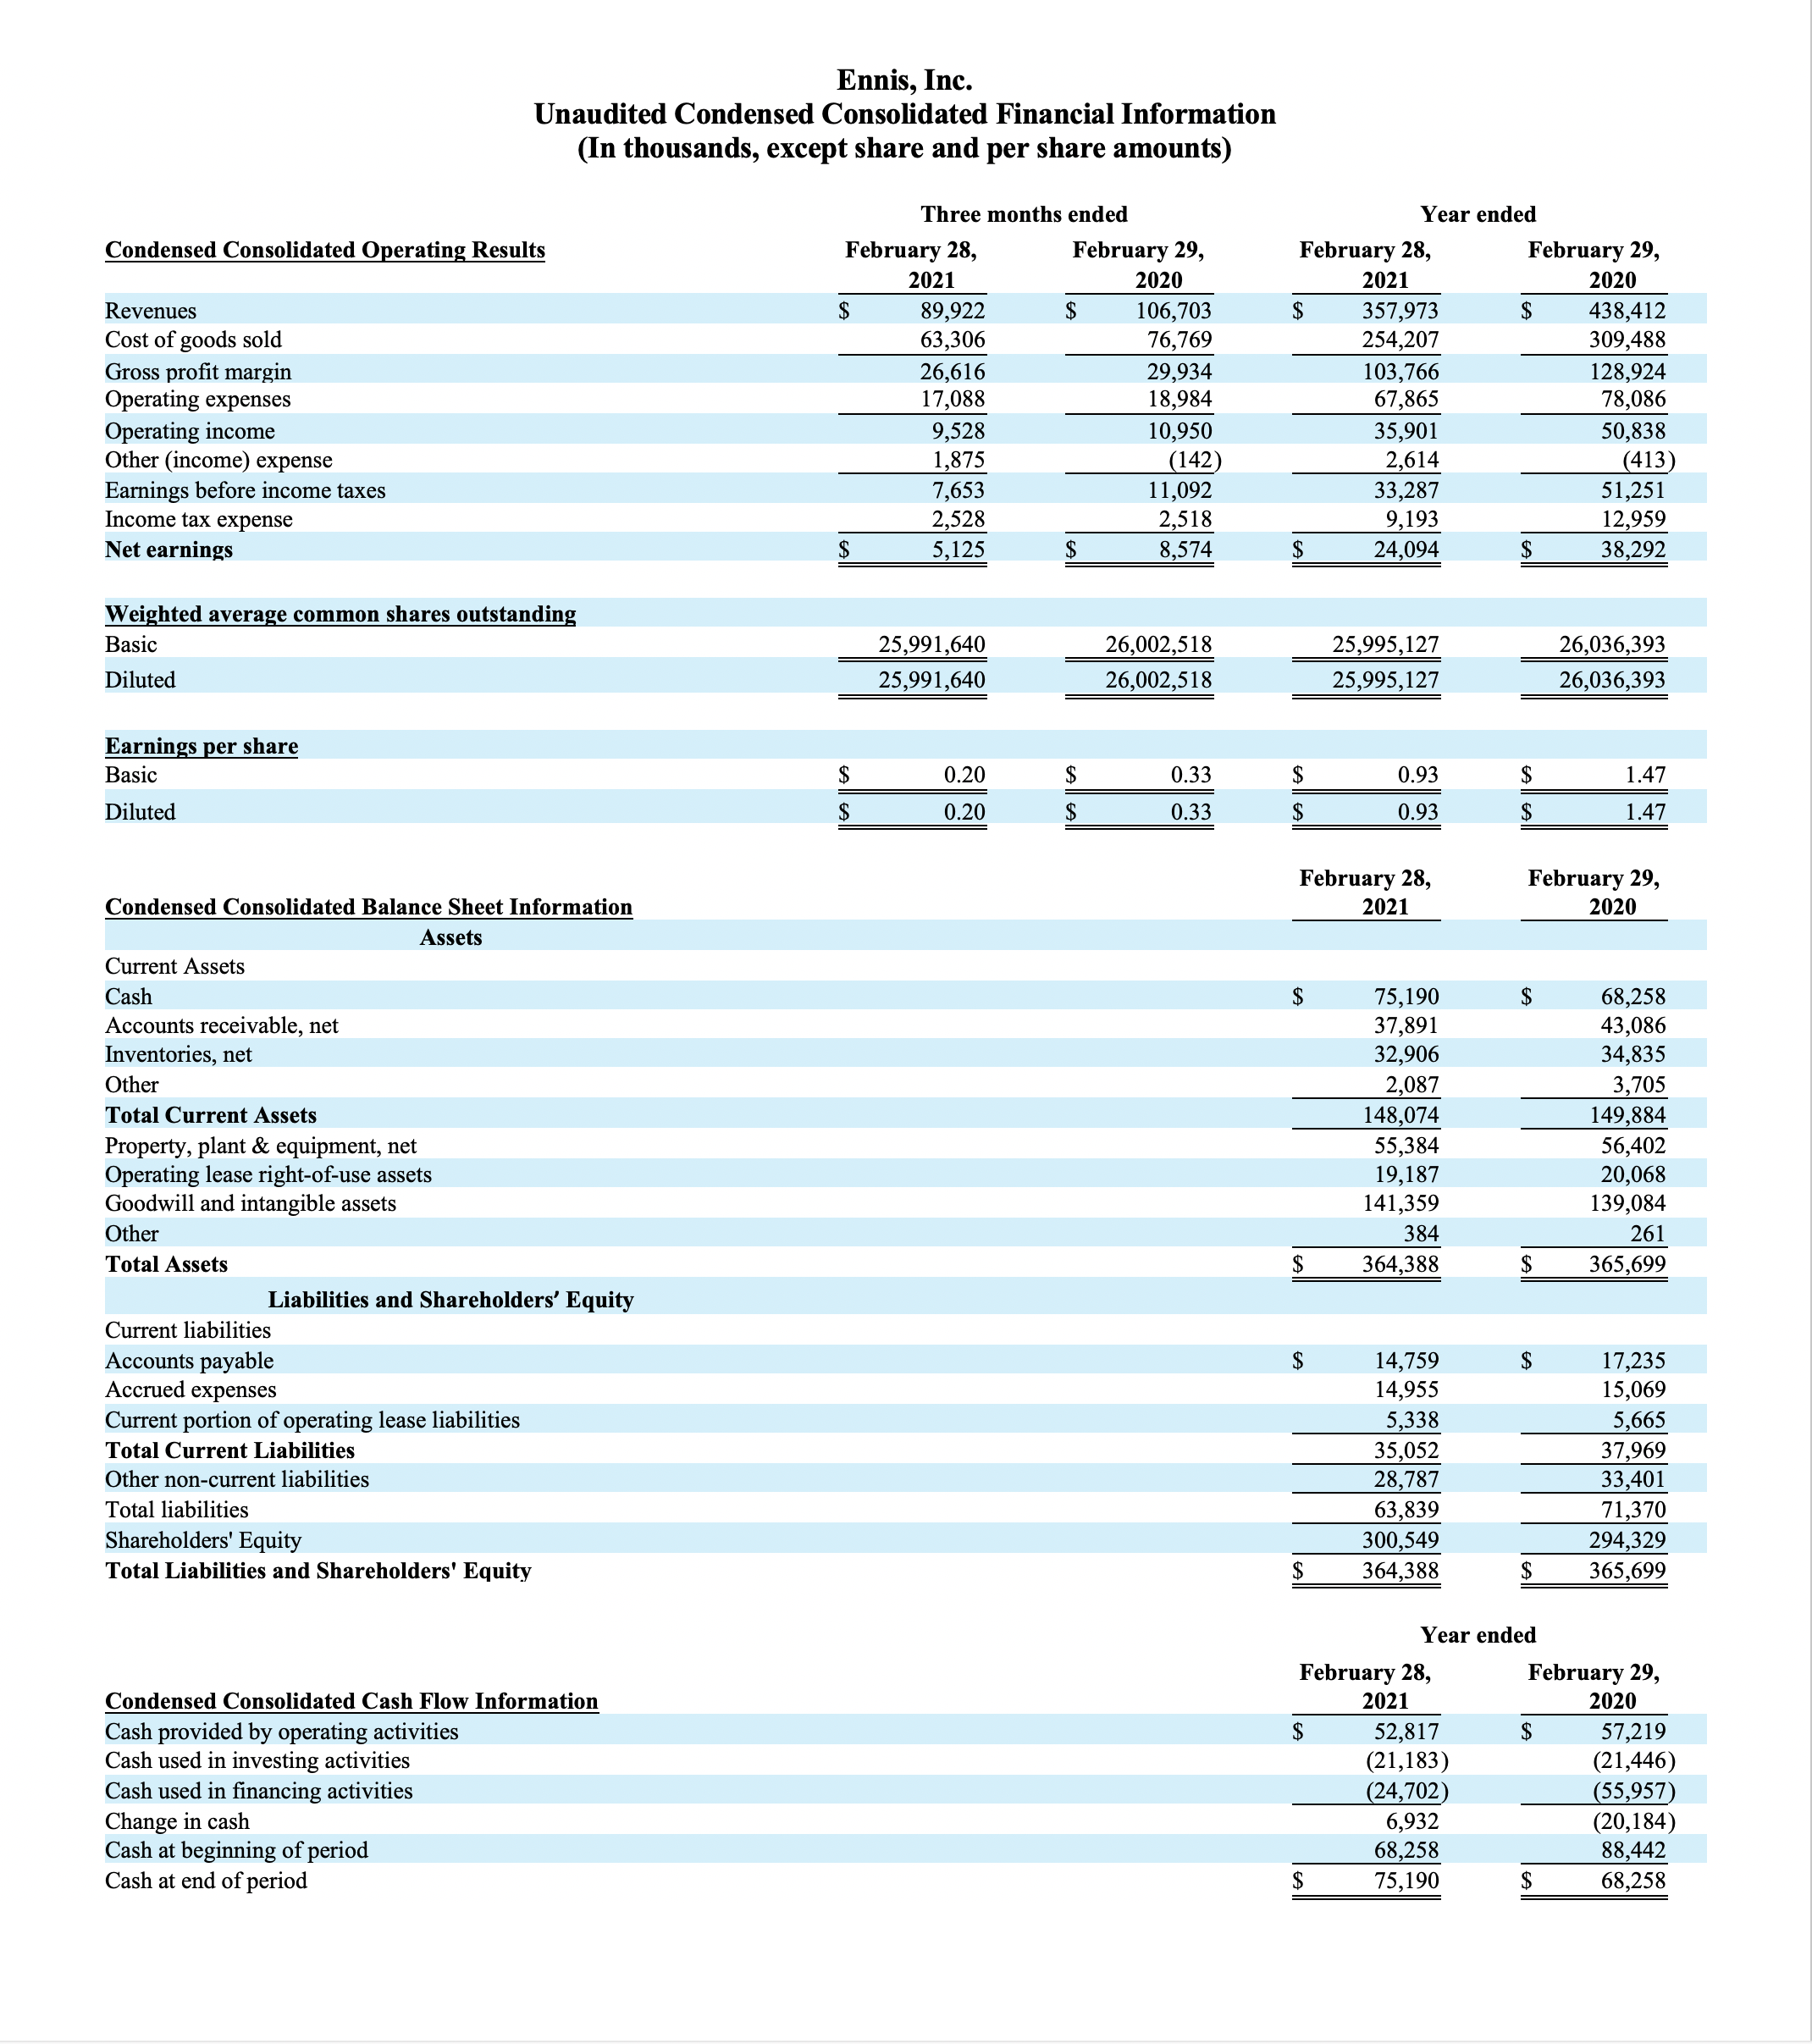 Ennis, Inc. Unaudited Condensed Consolidated Financial Information (In thousands, except share and per share amounts)